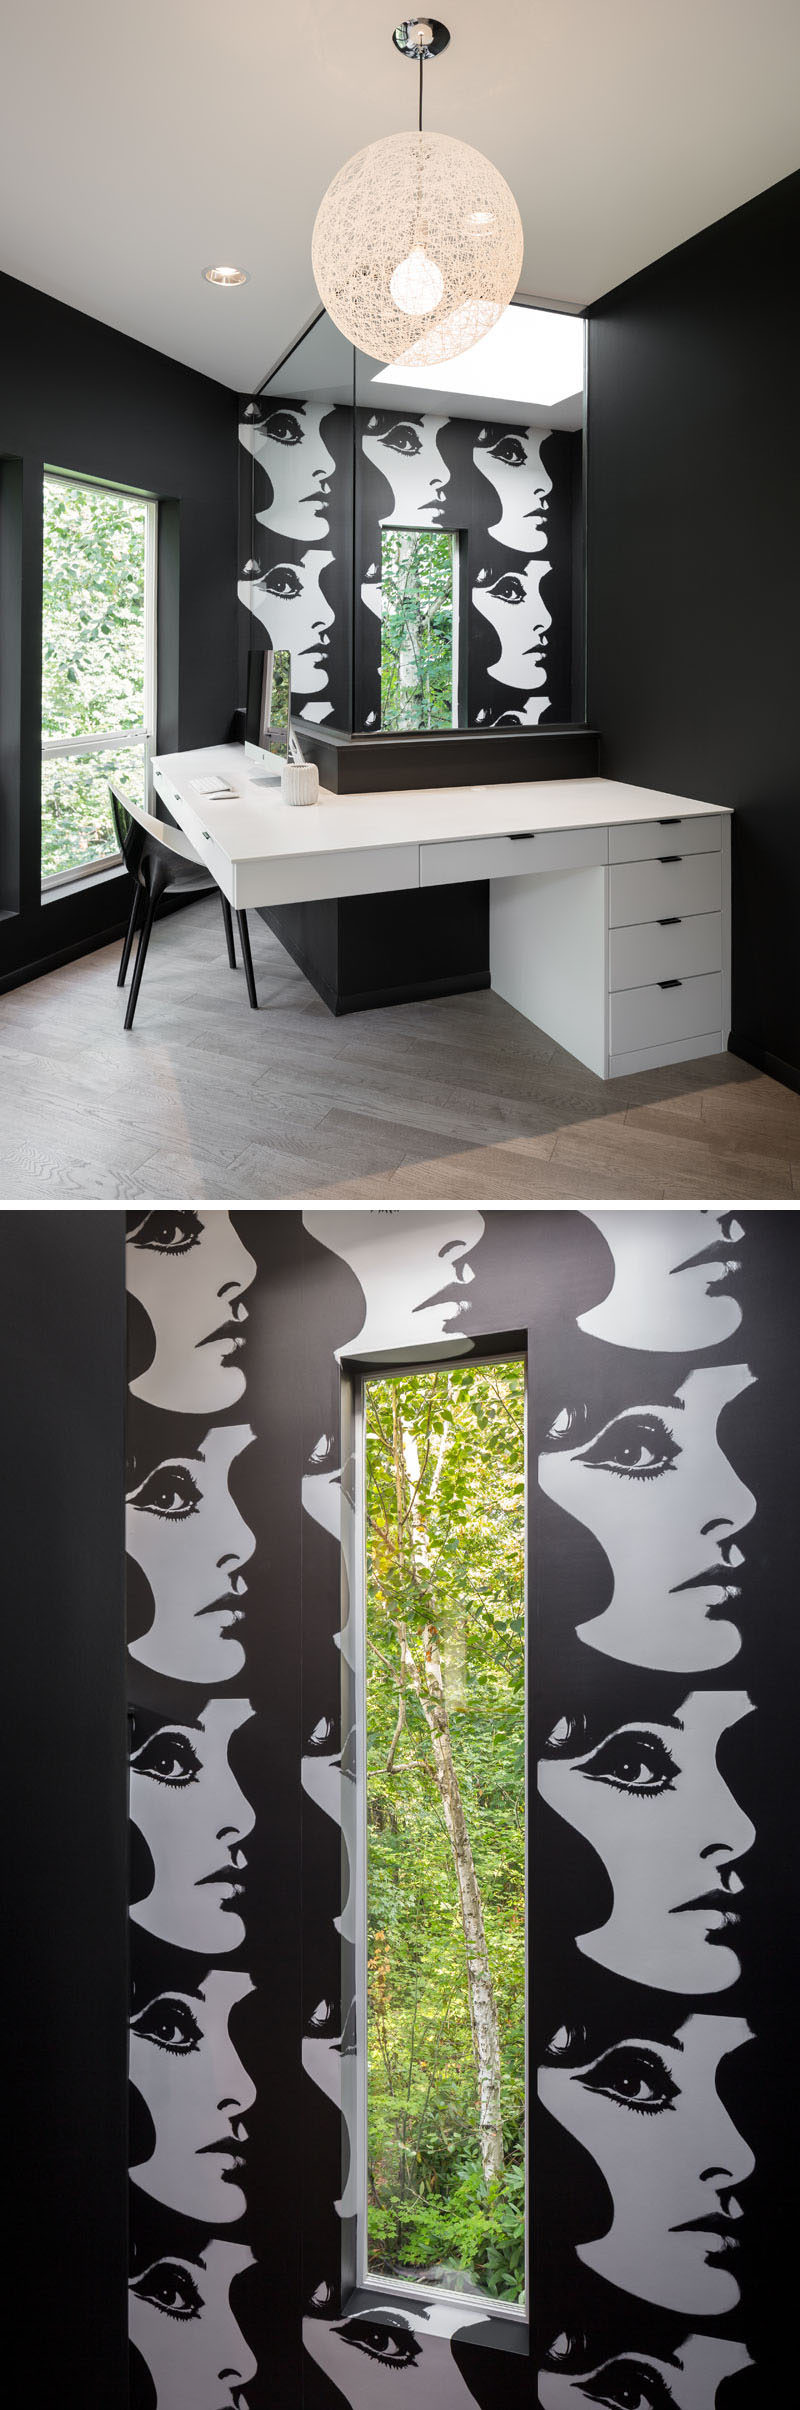 This home office features acustom corian desk and black and white Phyllis Morris Superstar wallpaper. #HomeOffice #ModernHomeOffice